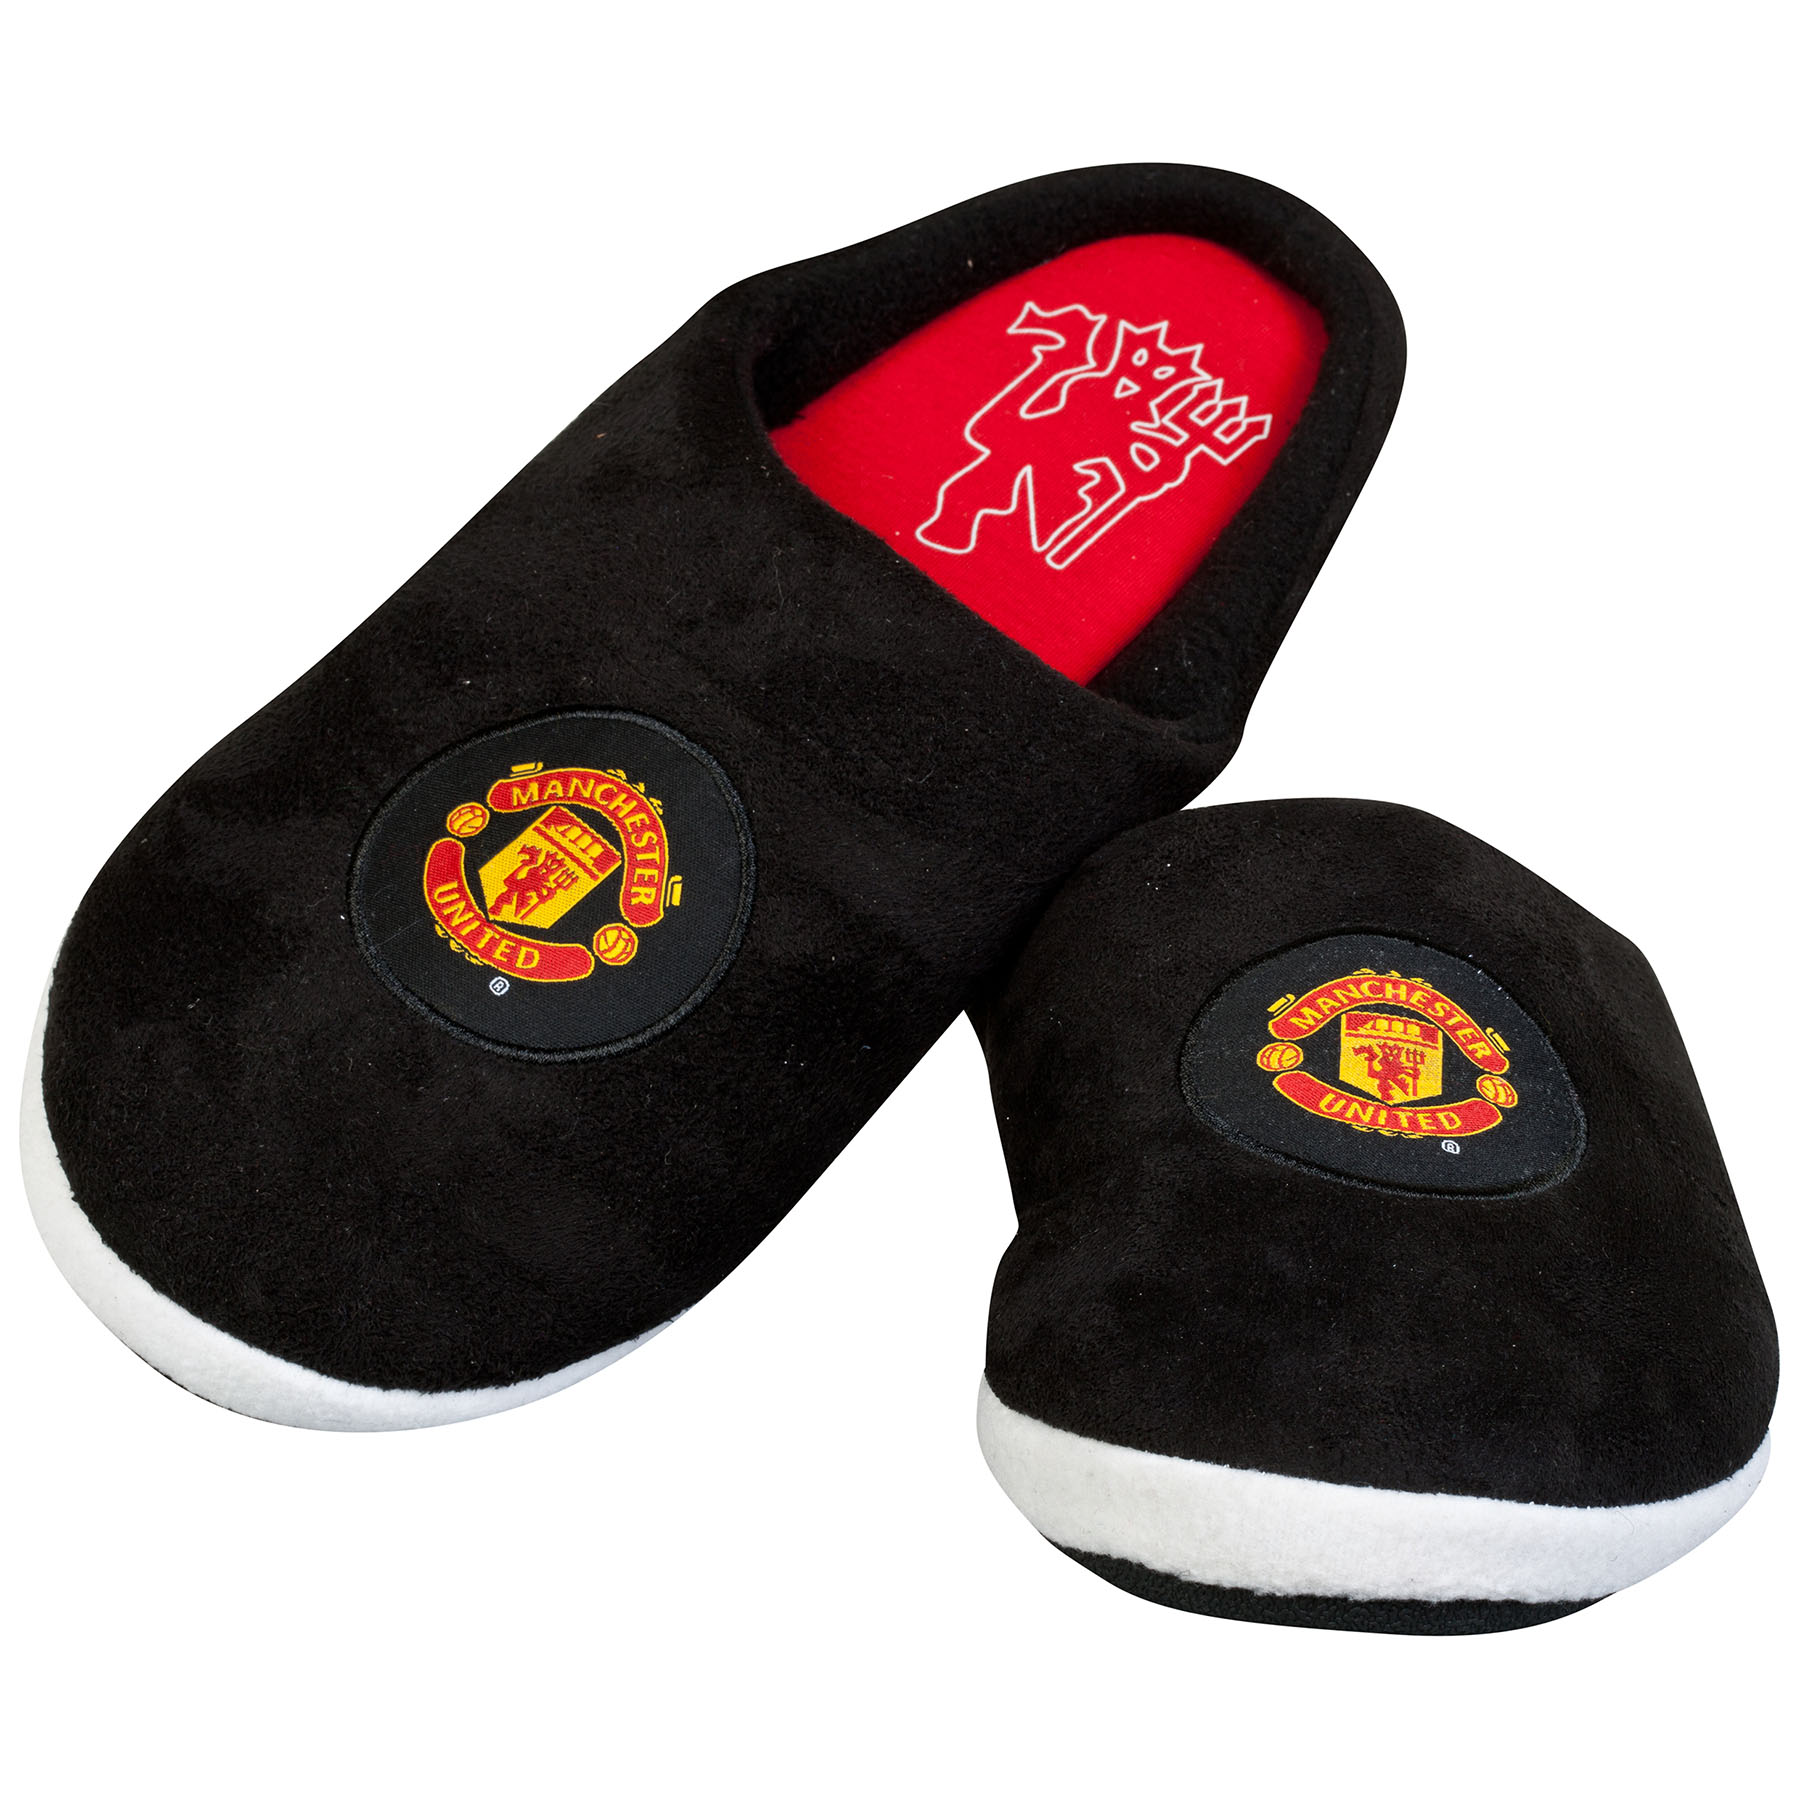 Manchester United Midfielder Slippers - Black - Older Boys